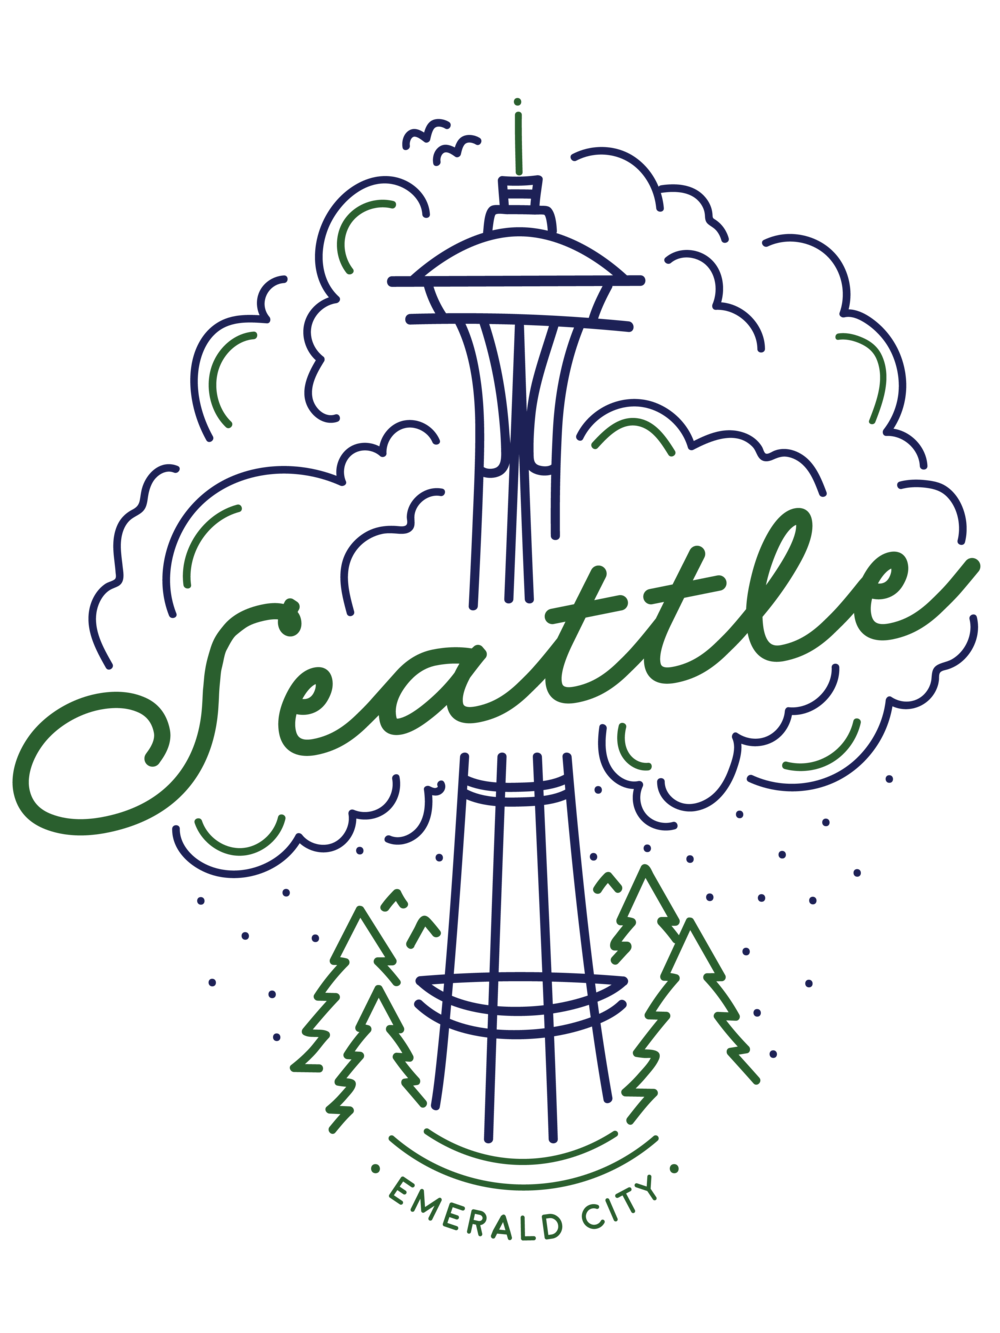 SEATTLE Space Needle dark-01.png